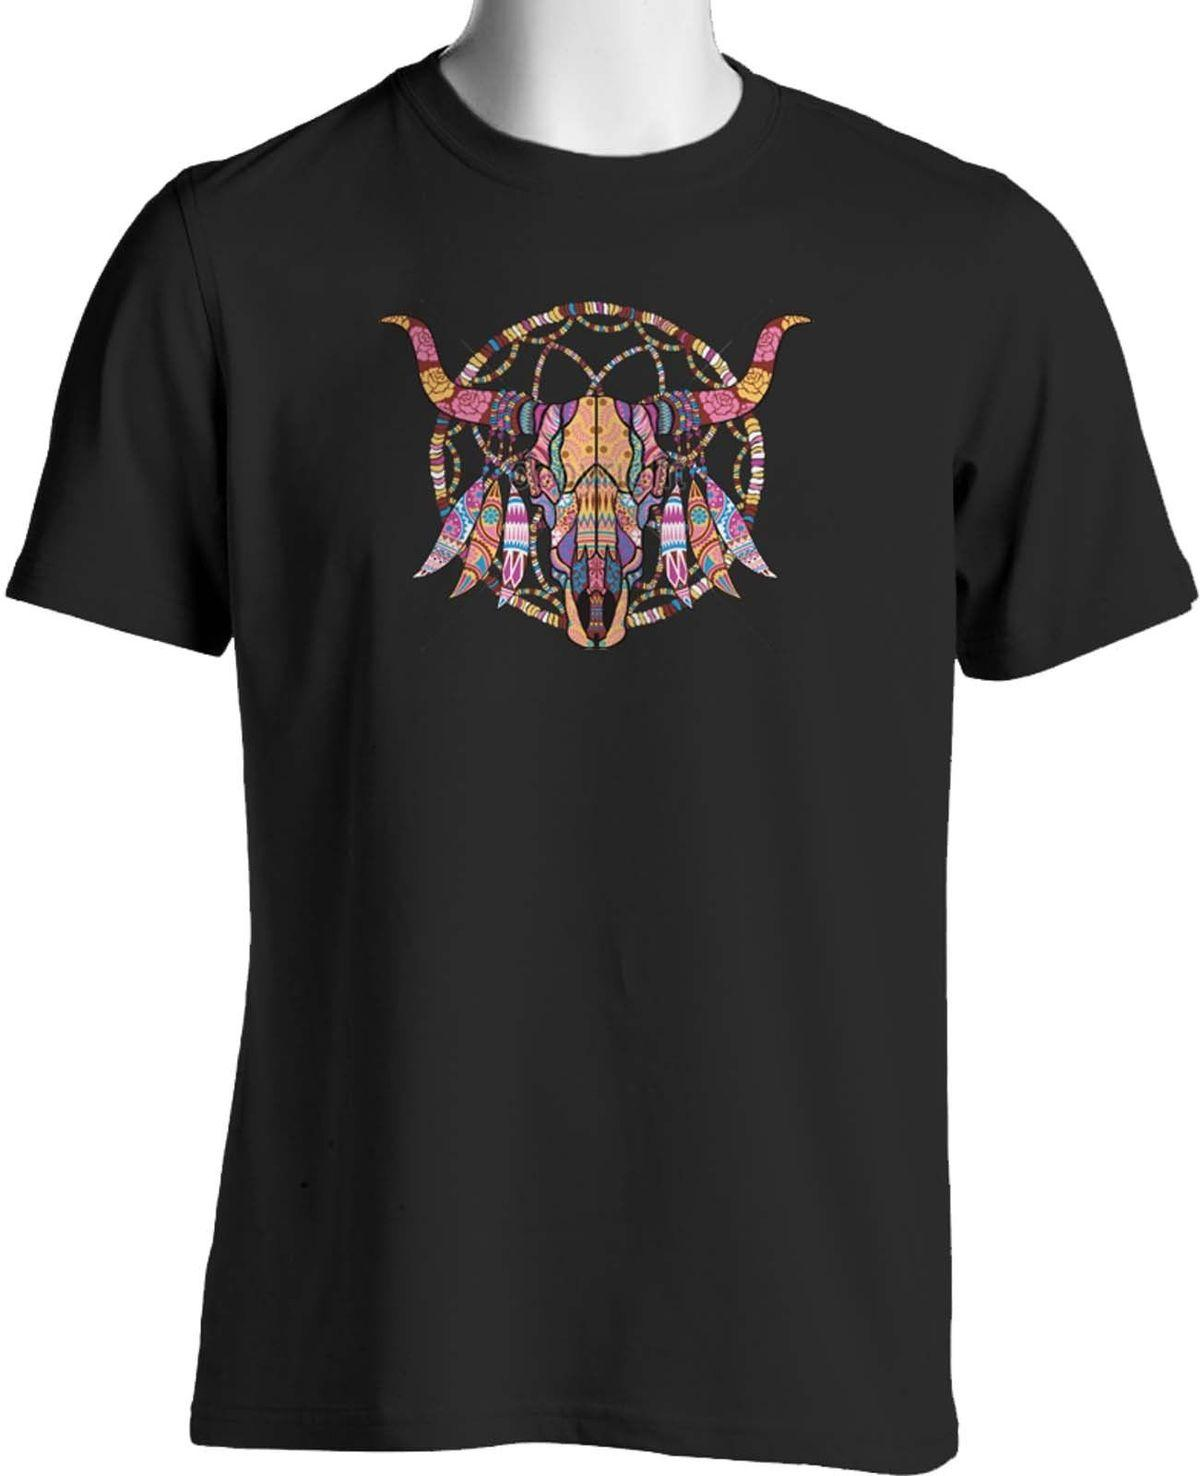 2585343f5 Native American T Shirt Mosaic Bull Skull Feathers Dream Catcher White  Black Grey Red Trousers?Tshirt T Shirt Shopping Awesome Tee Shirts From  Qz1685640834, ...